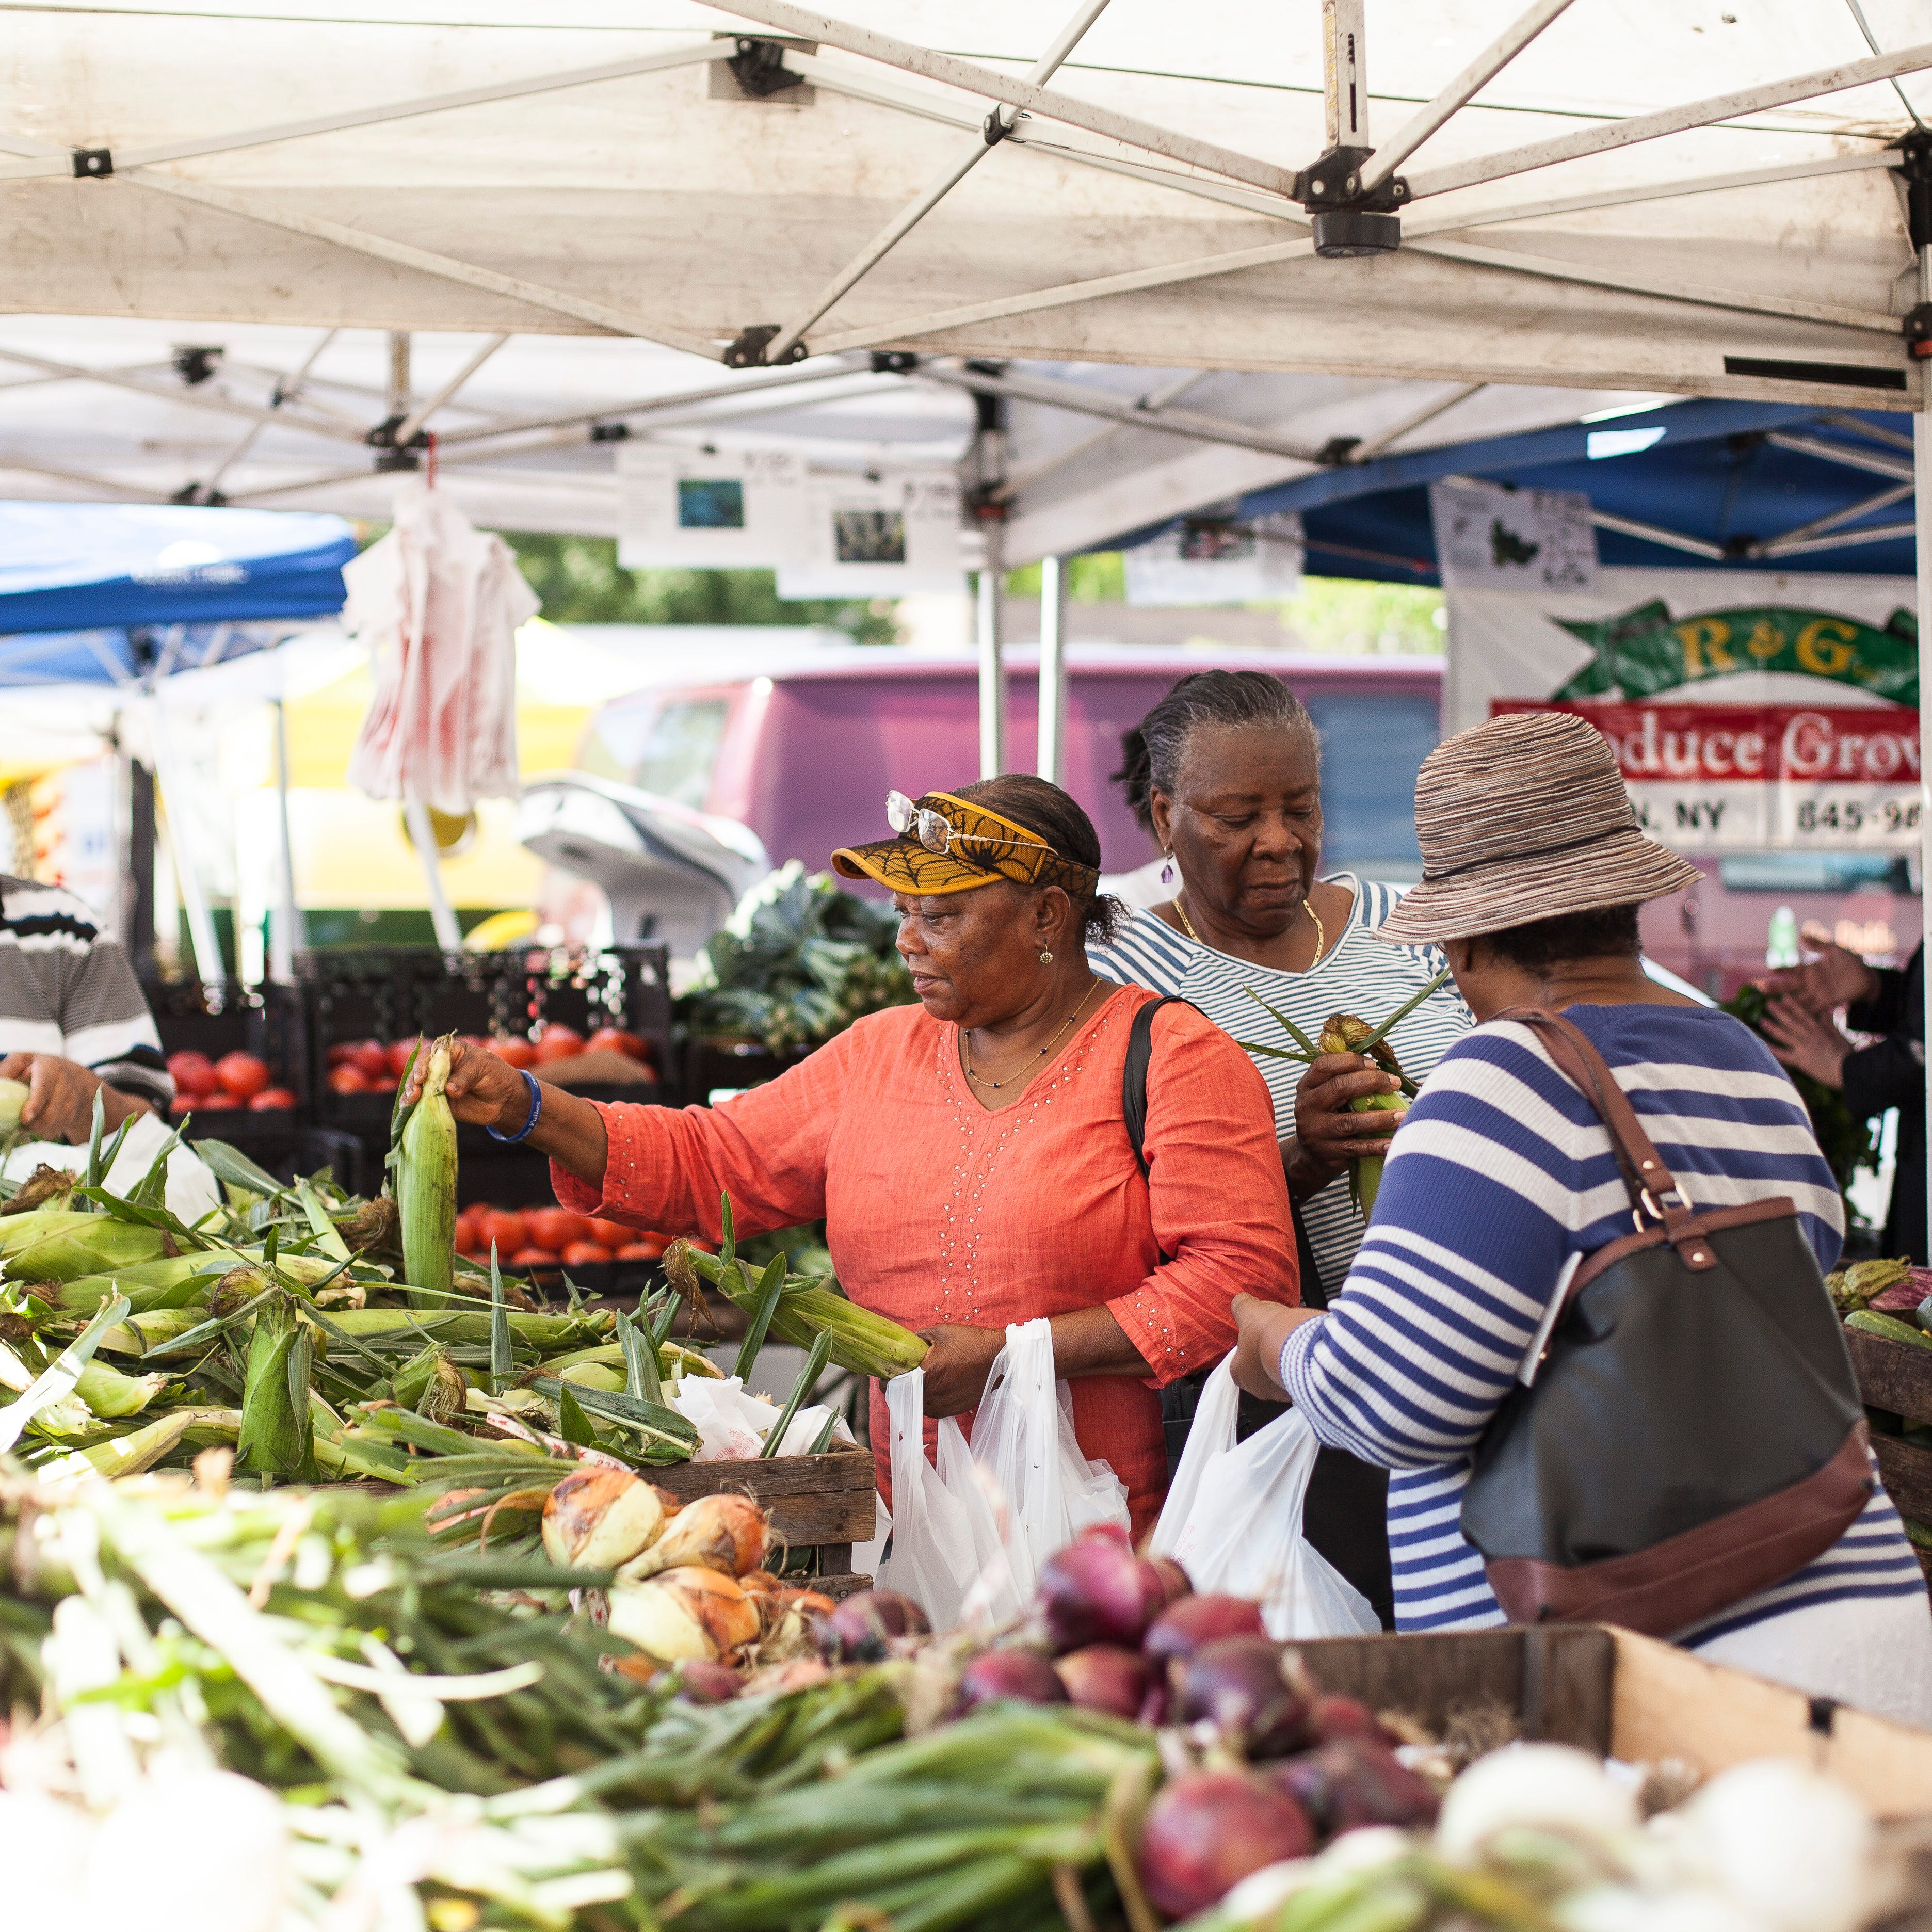 Nyack Farmers market opens its 22nd season Thursday